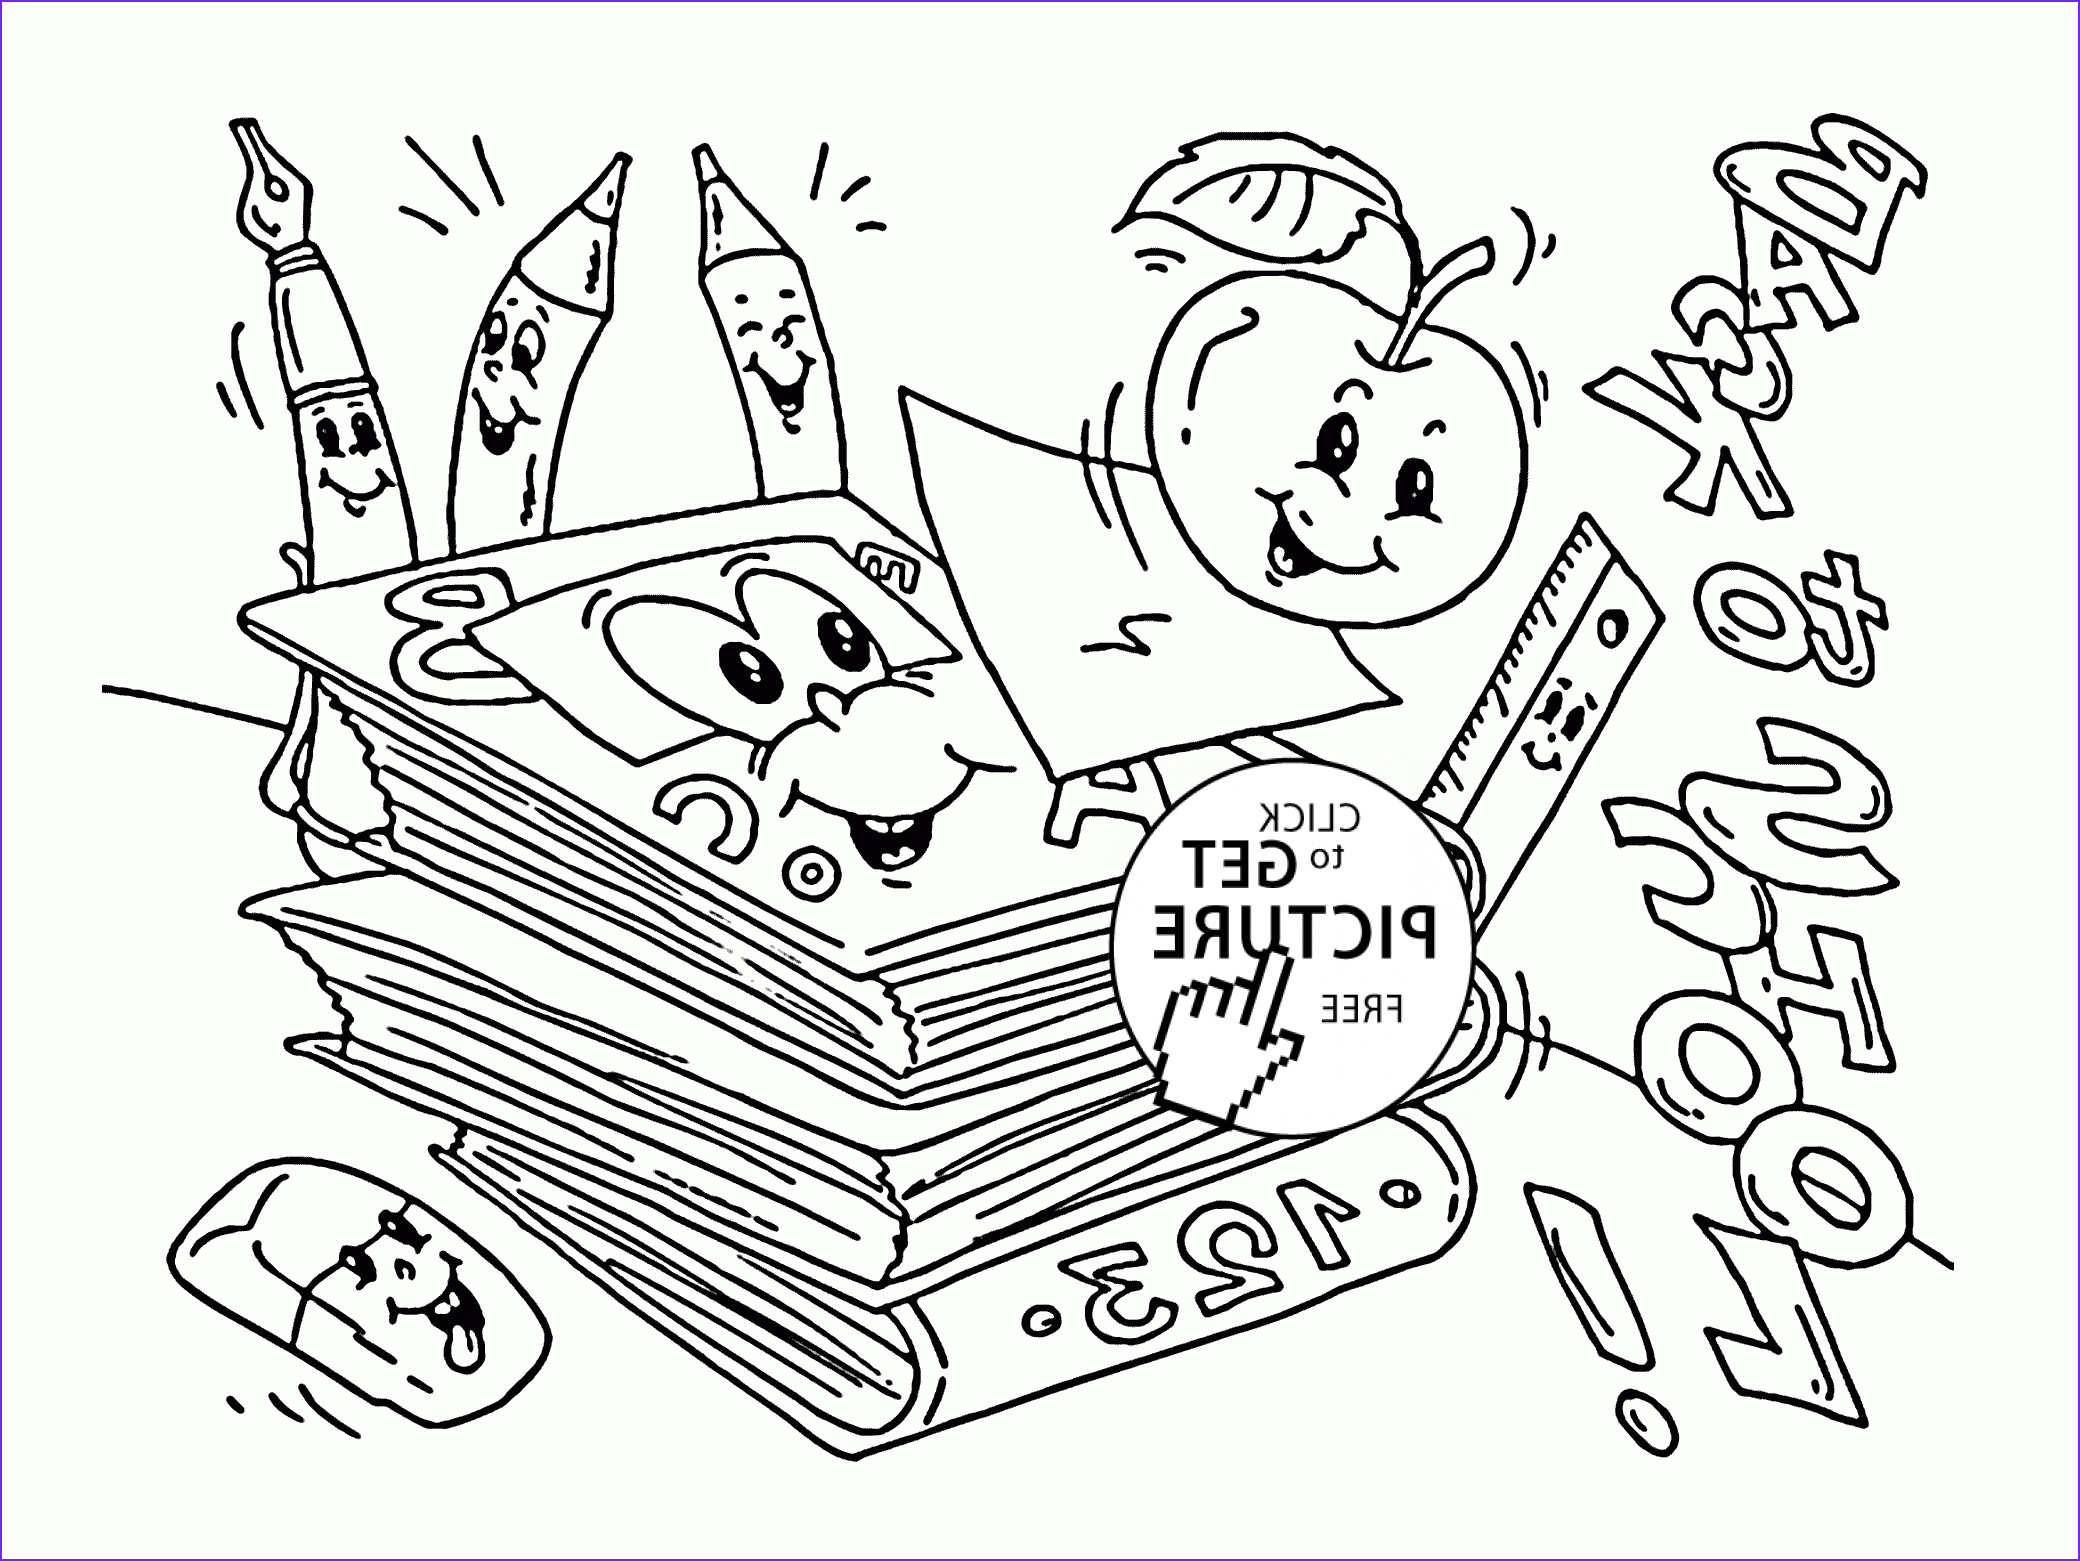 wel e back to school coloring pages